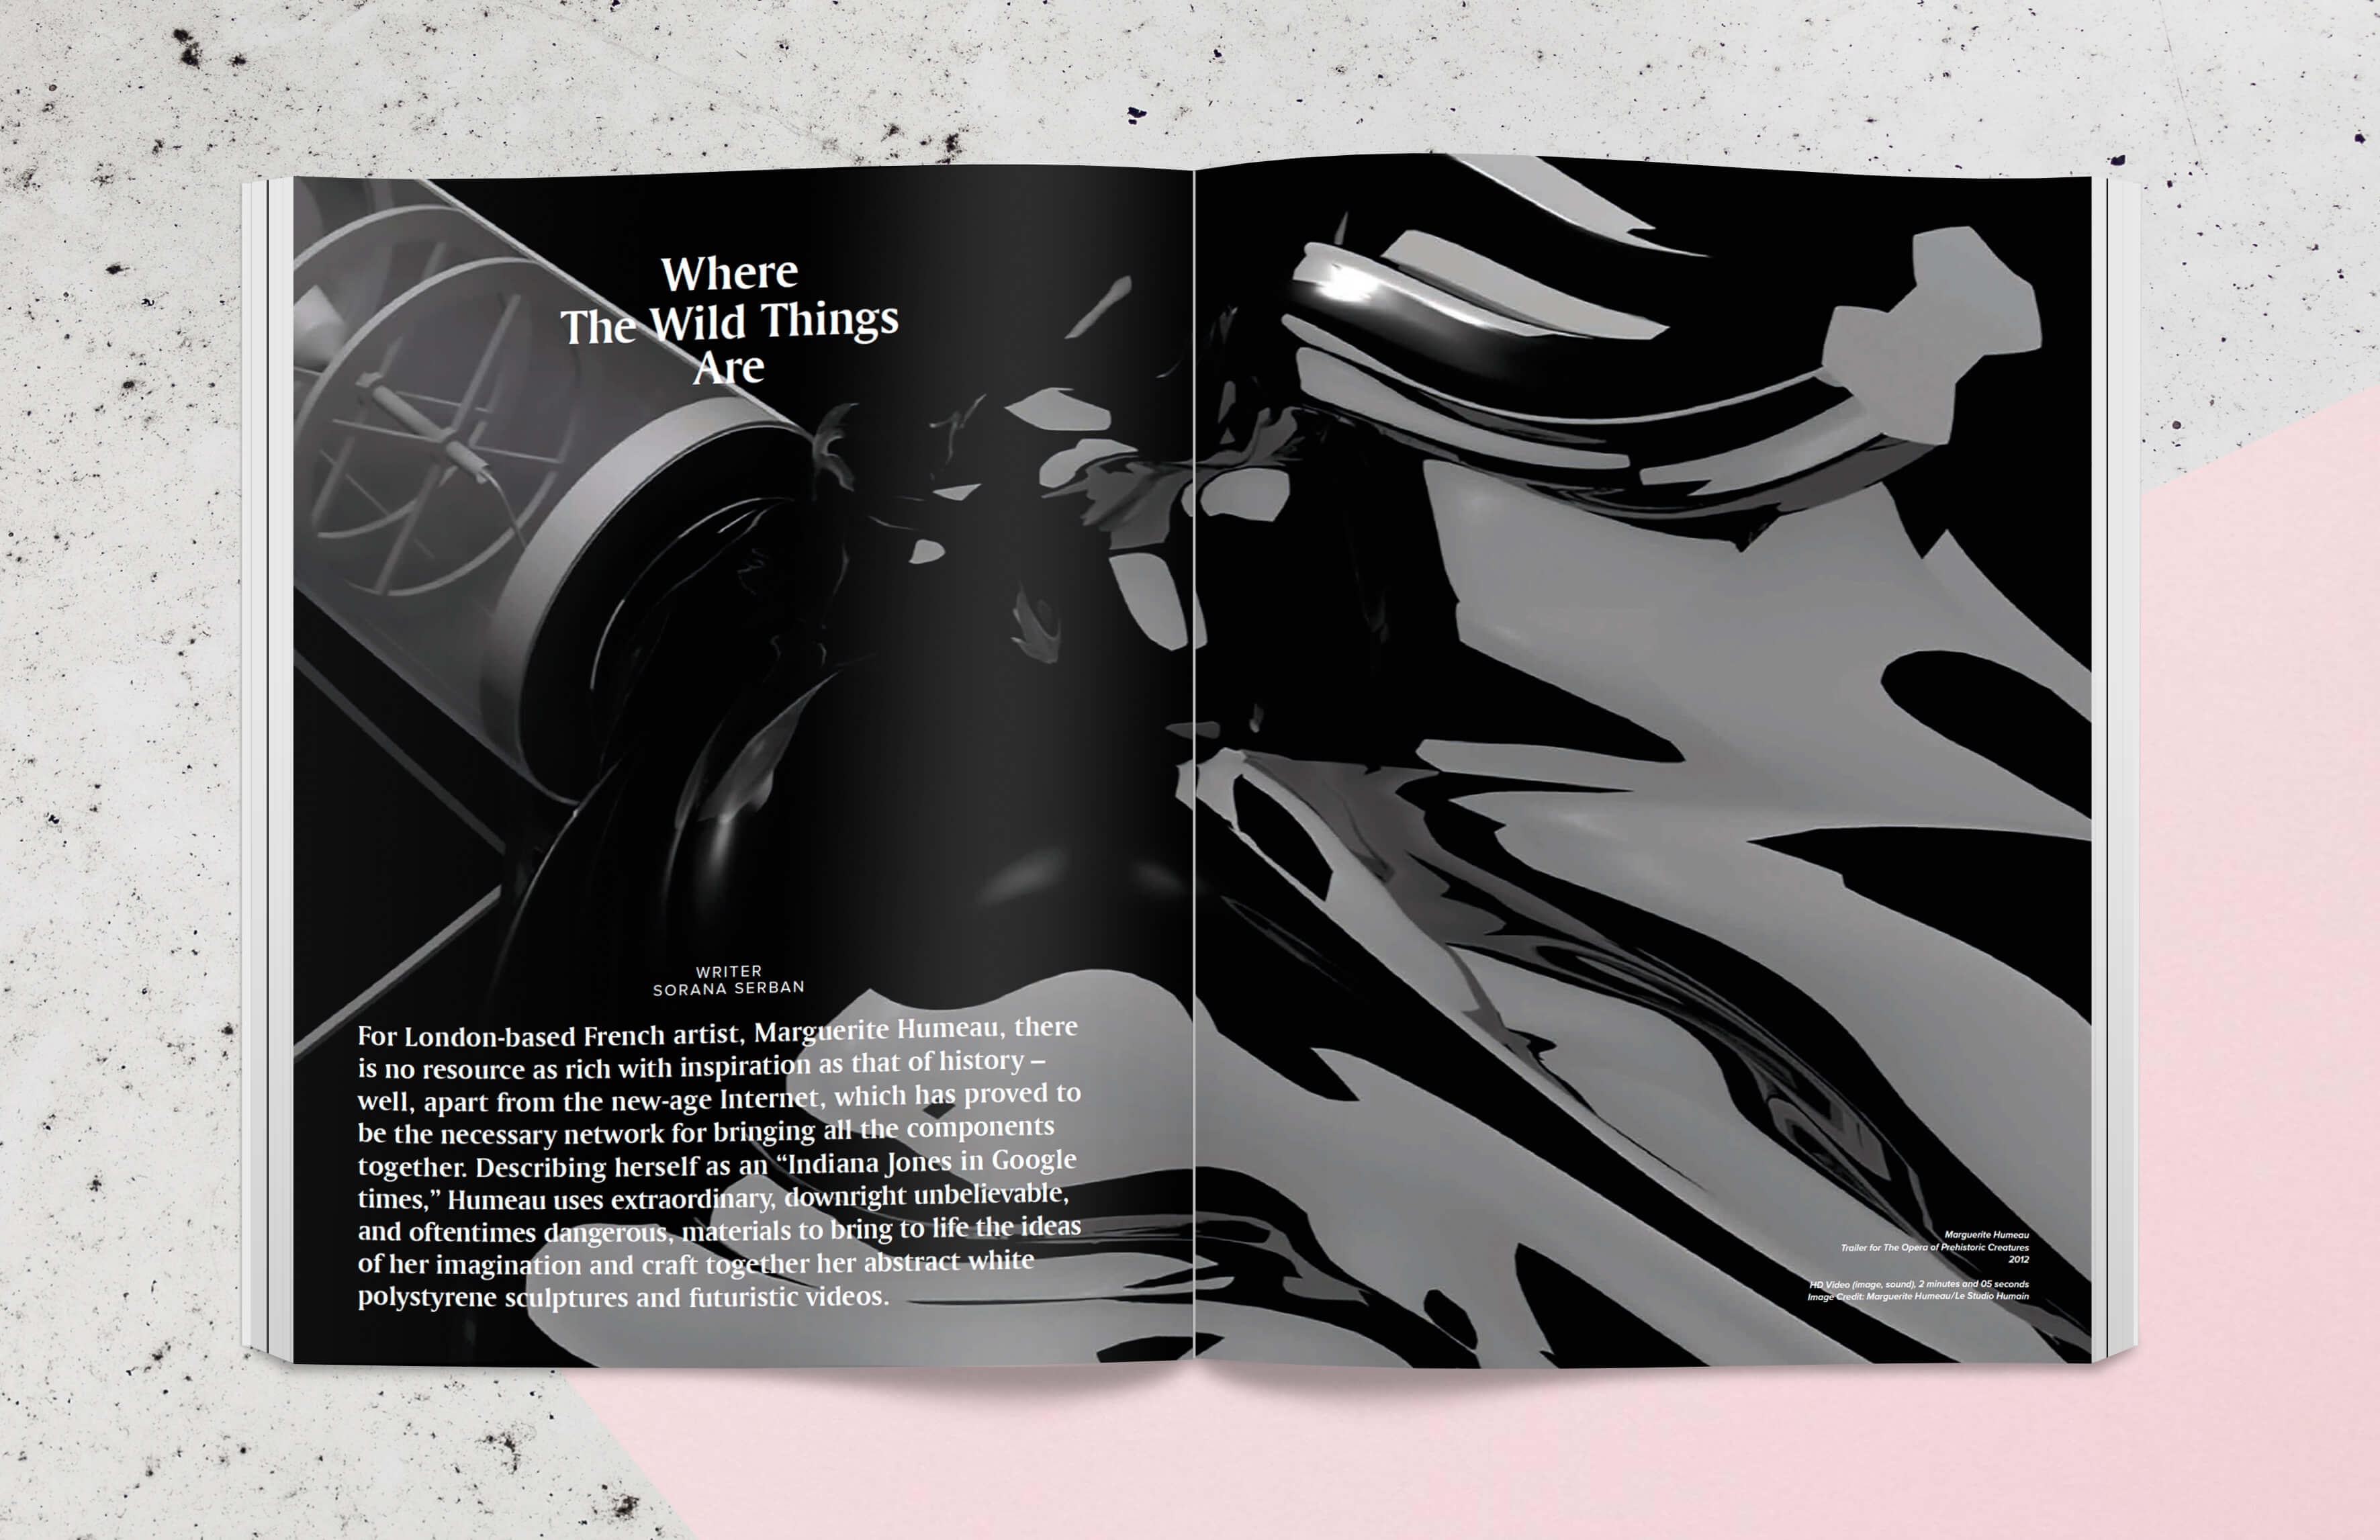 Magazine spread showing art created by Marguerite Humeau